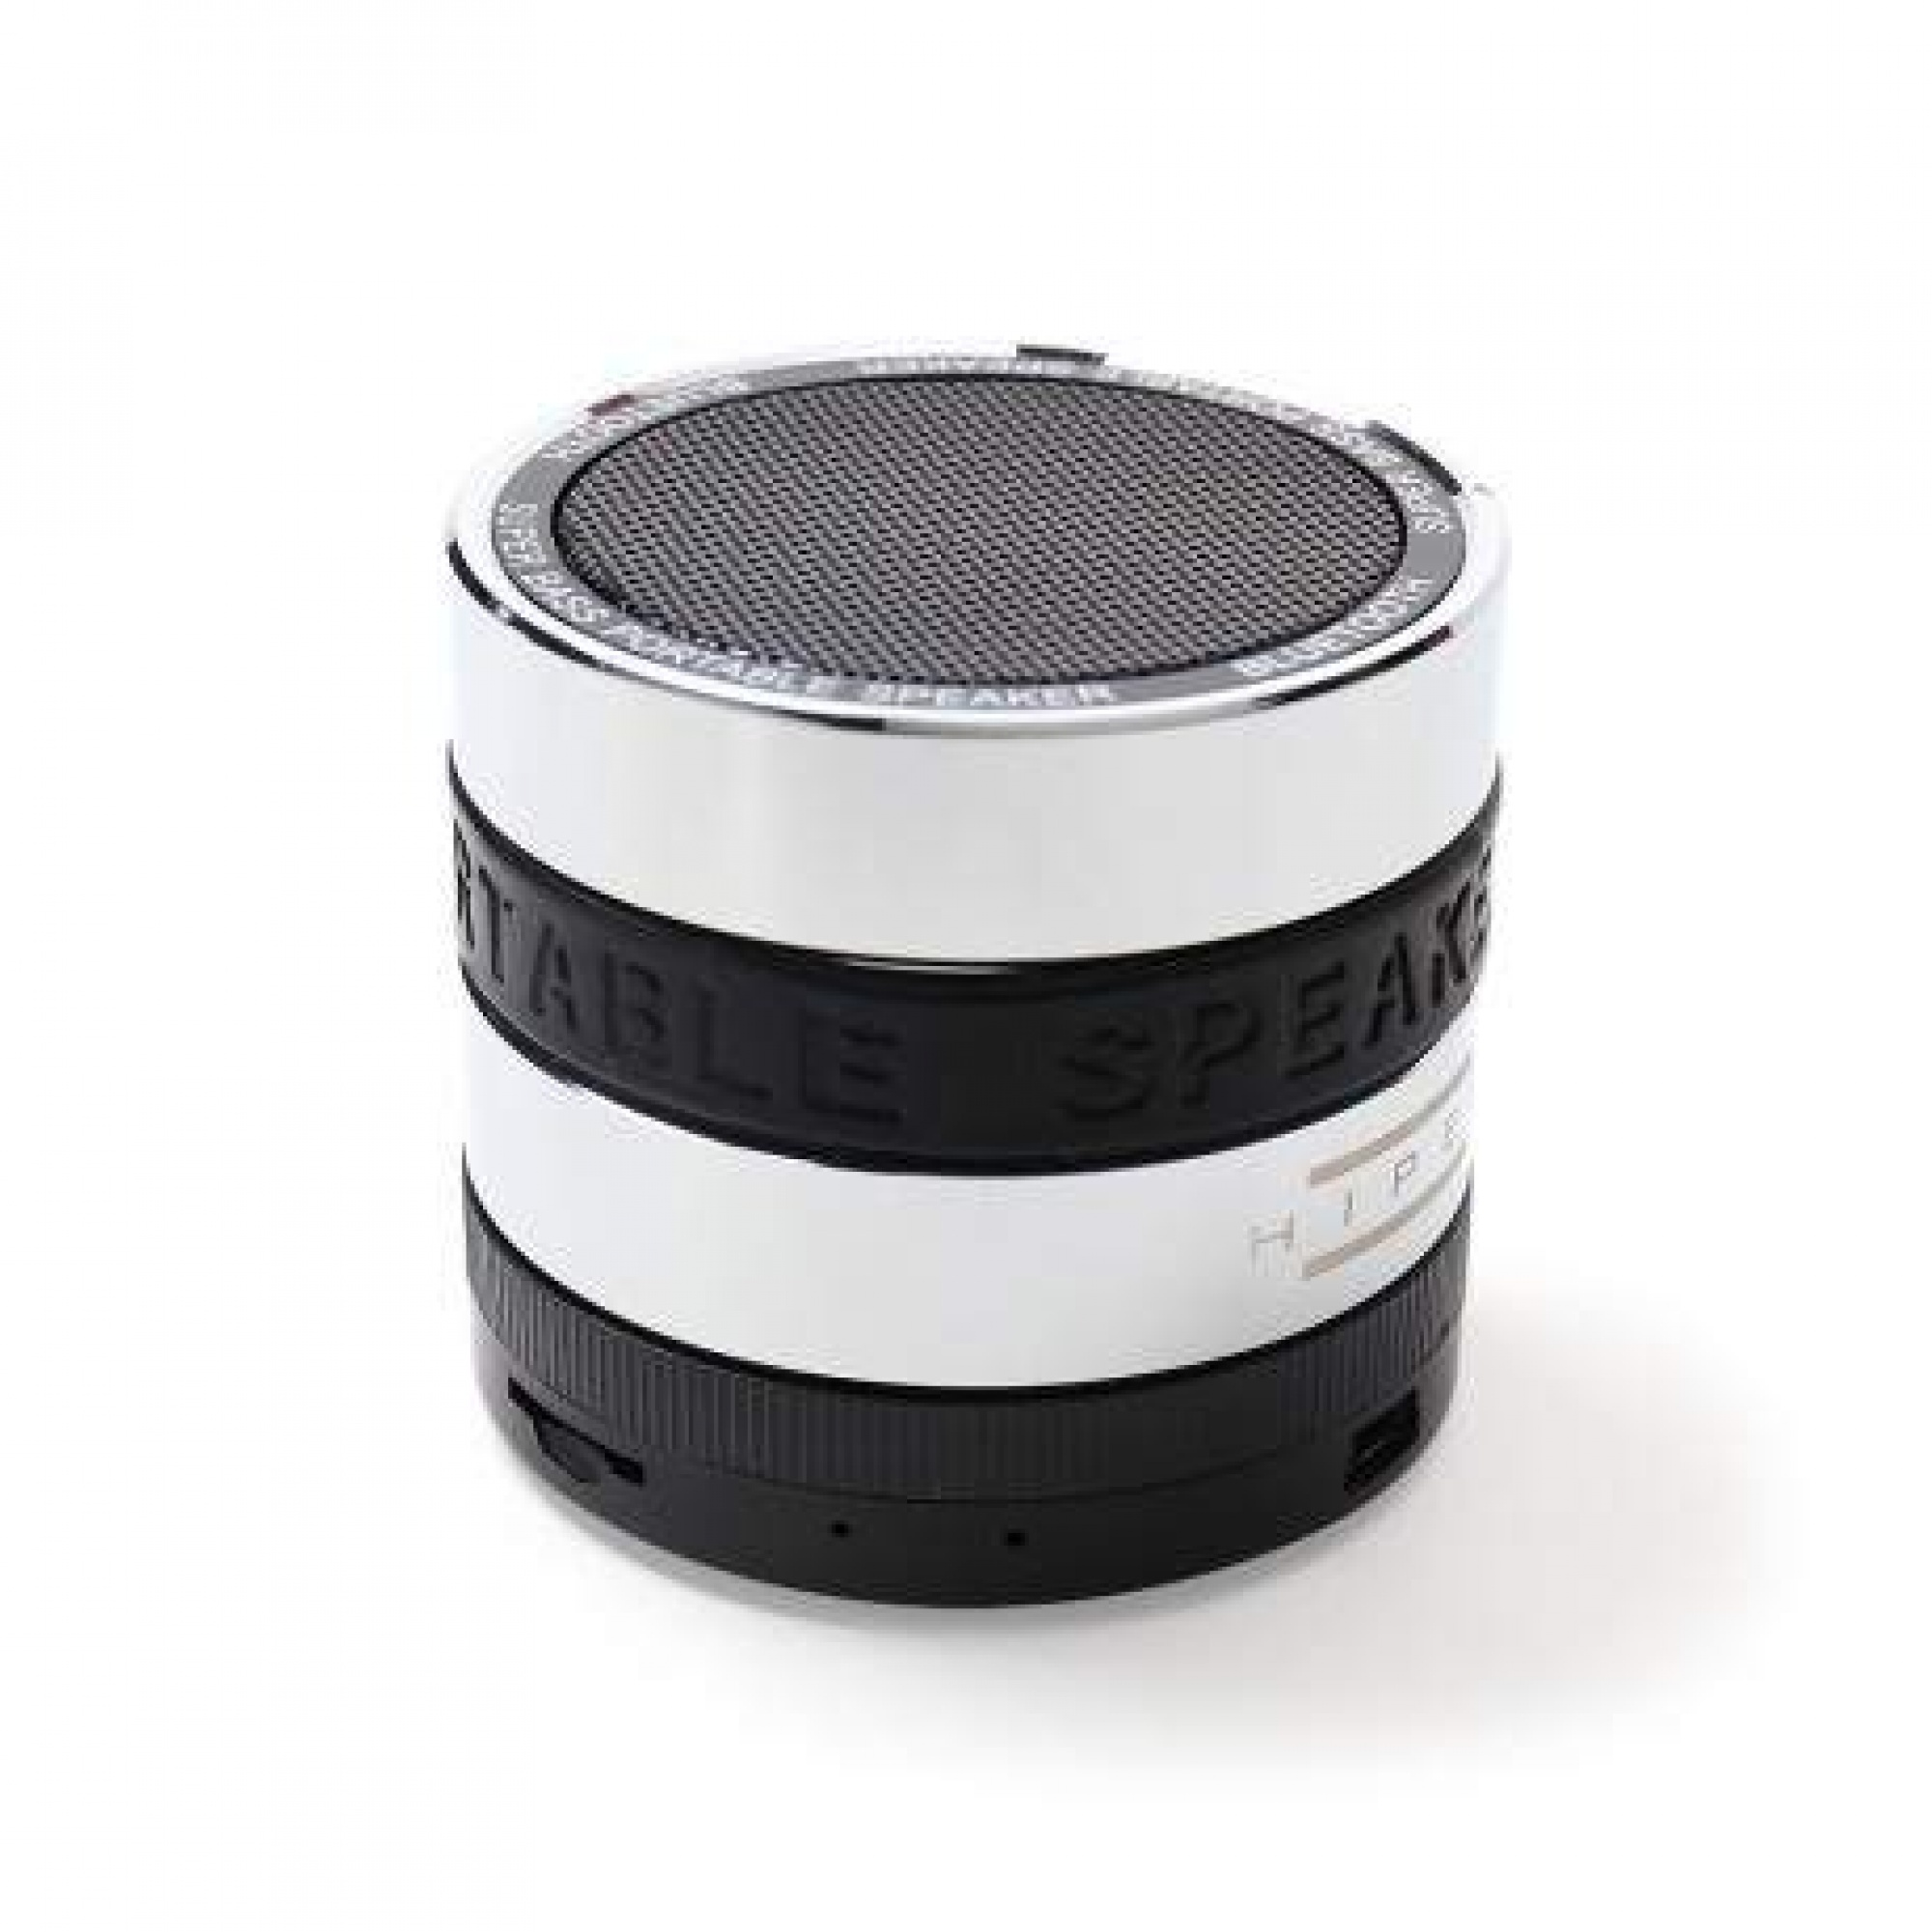 HIPER BT-30S BLUETOOTH SPEAKER GRİ/SİYAH